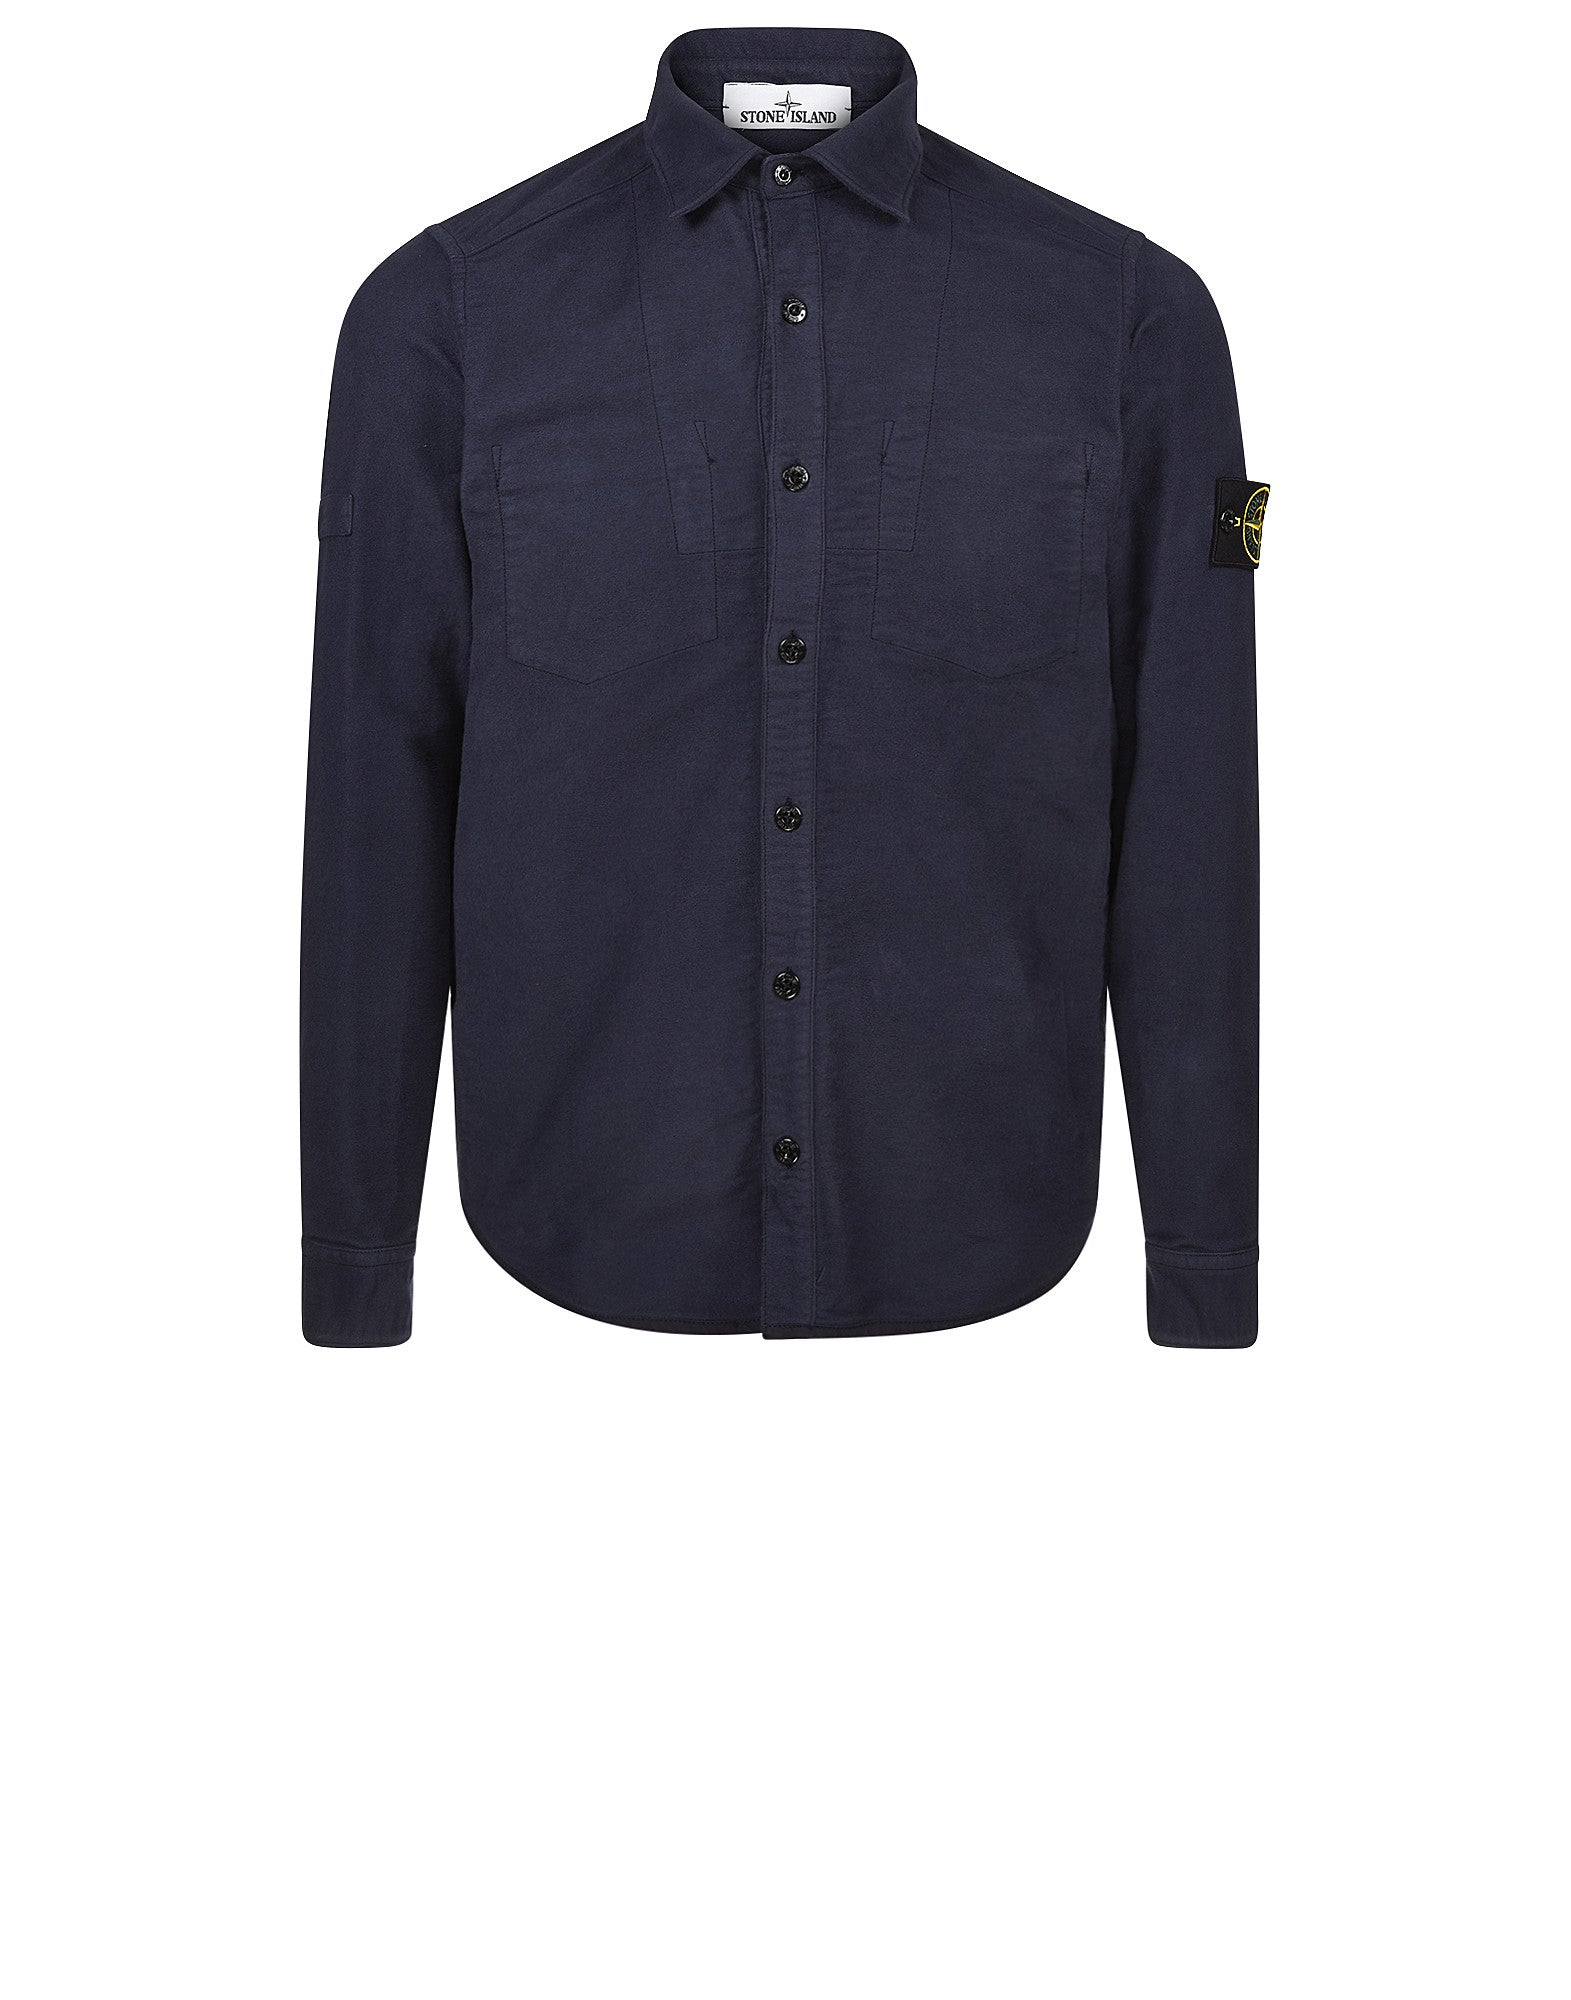 1F102 REVERSIBLE SHIRT IN BLUE